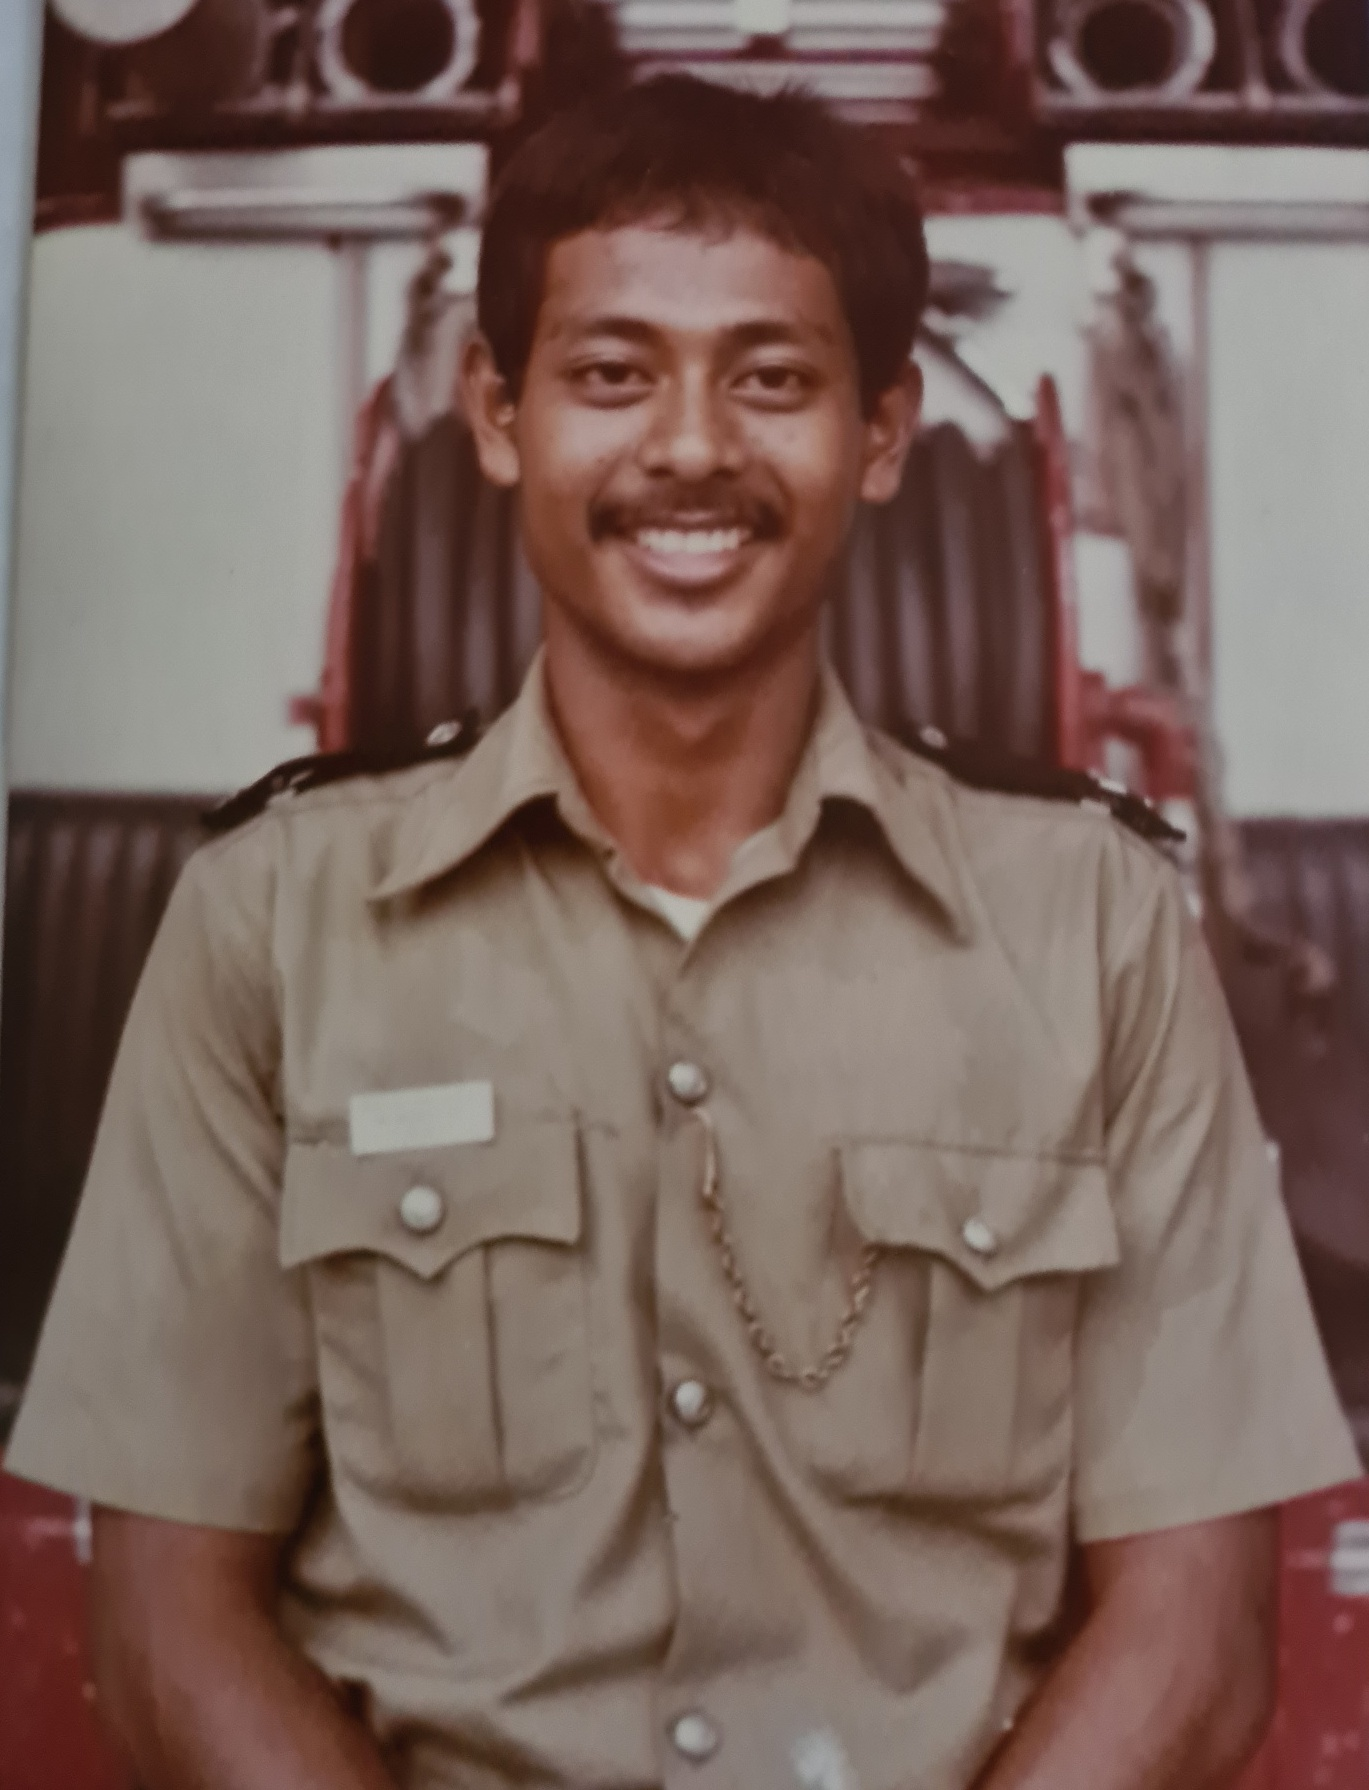 This picture was taken when SWO (RET) Md Salleh assumed the role  of a Leading Fireman No. 5 (a rank structure of the past).